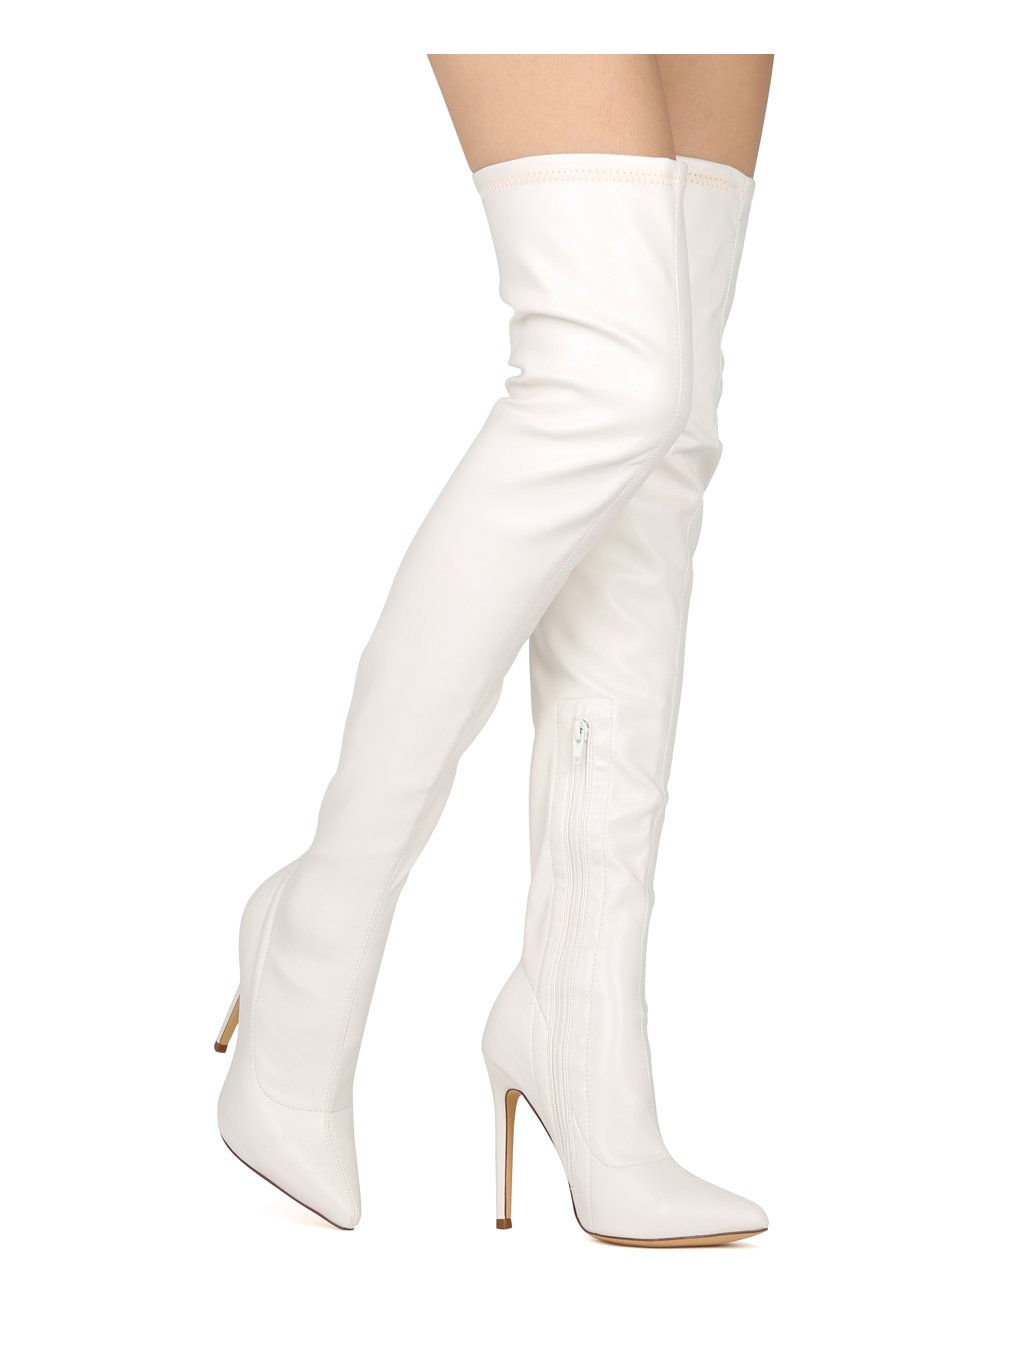 Liliana Women Thigh High Pointy Toe Stiletto Boot HE09 - White Leatherette (Size: 6.0)